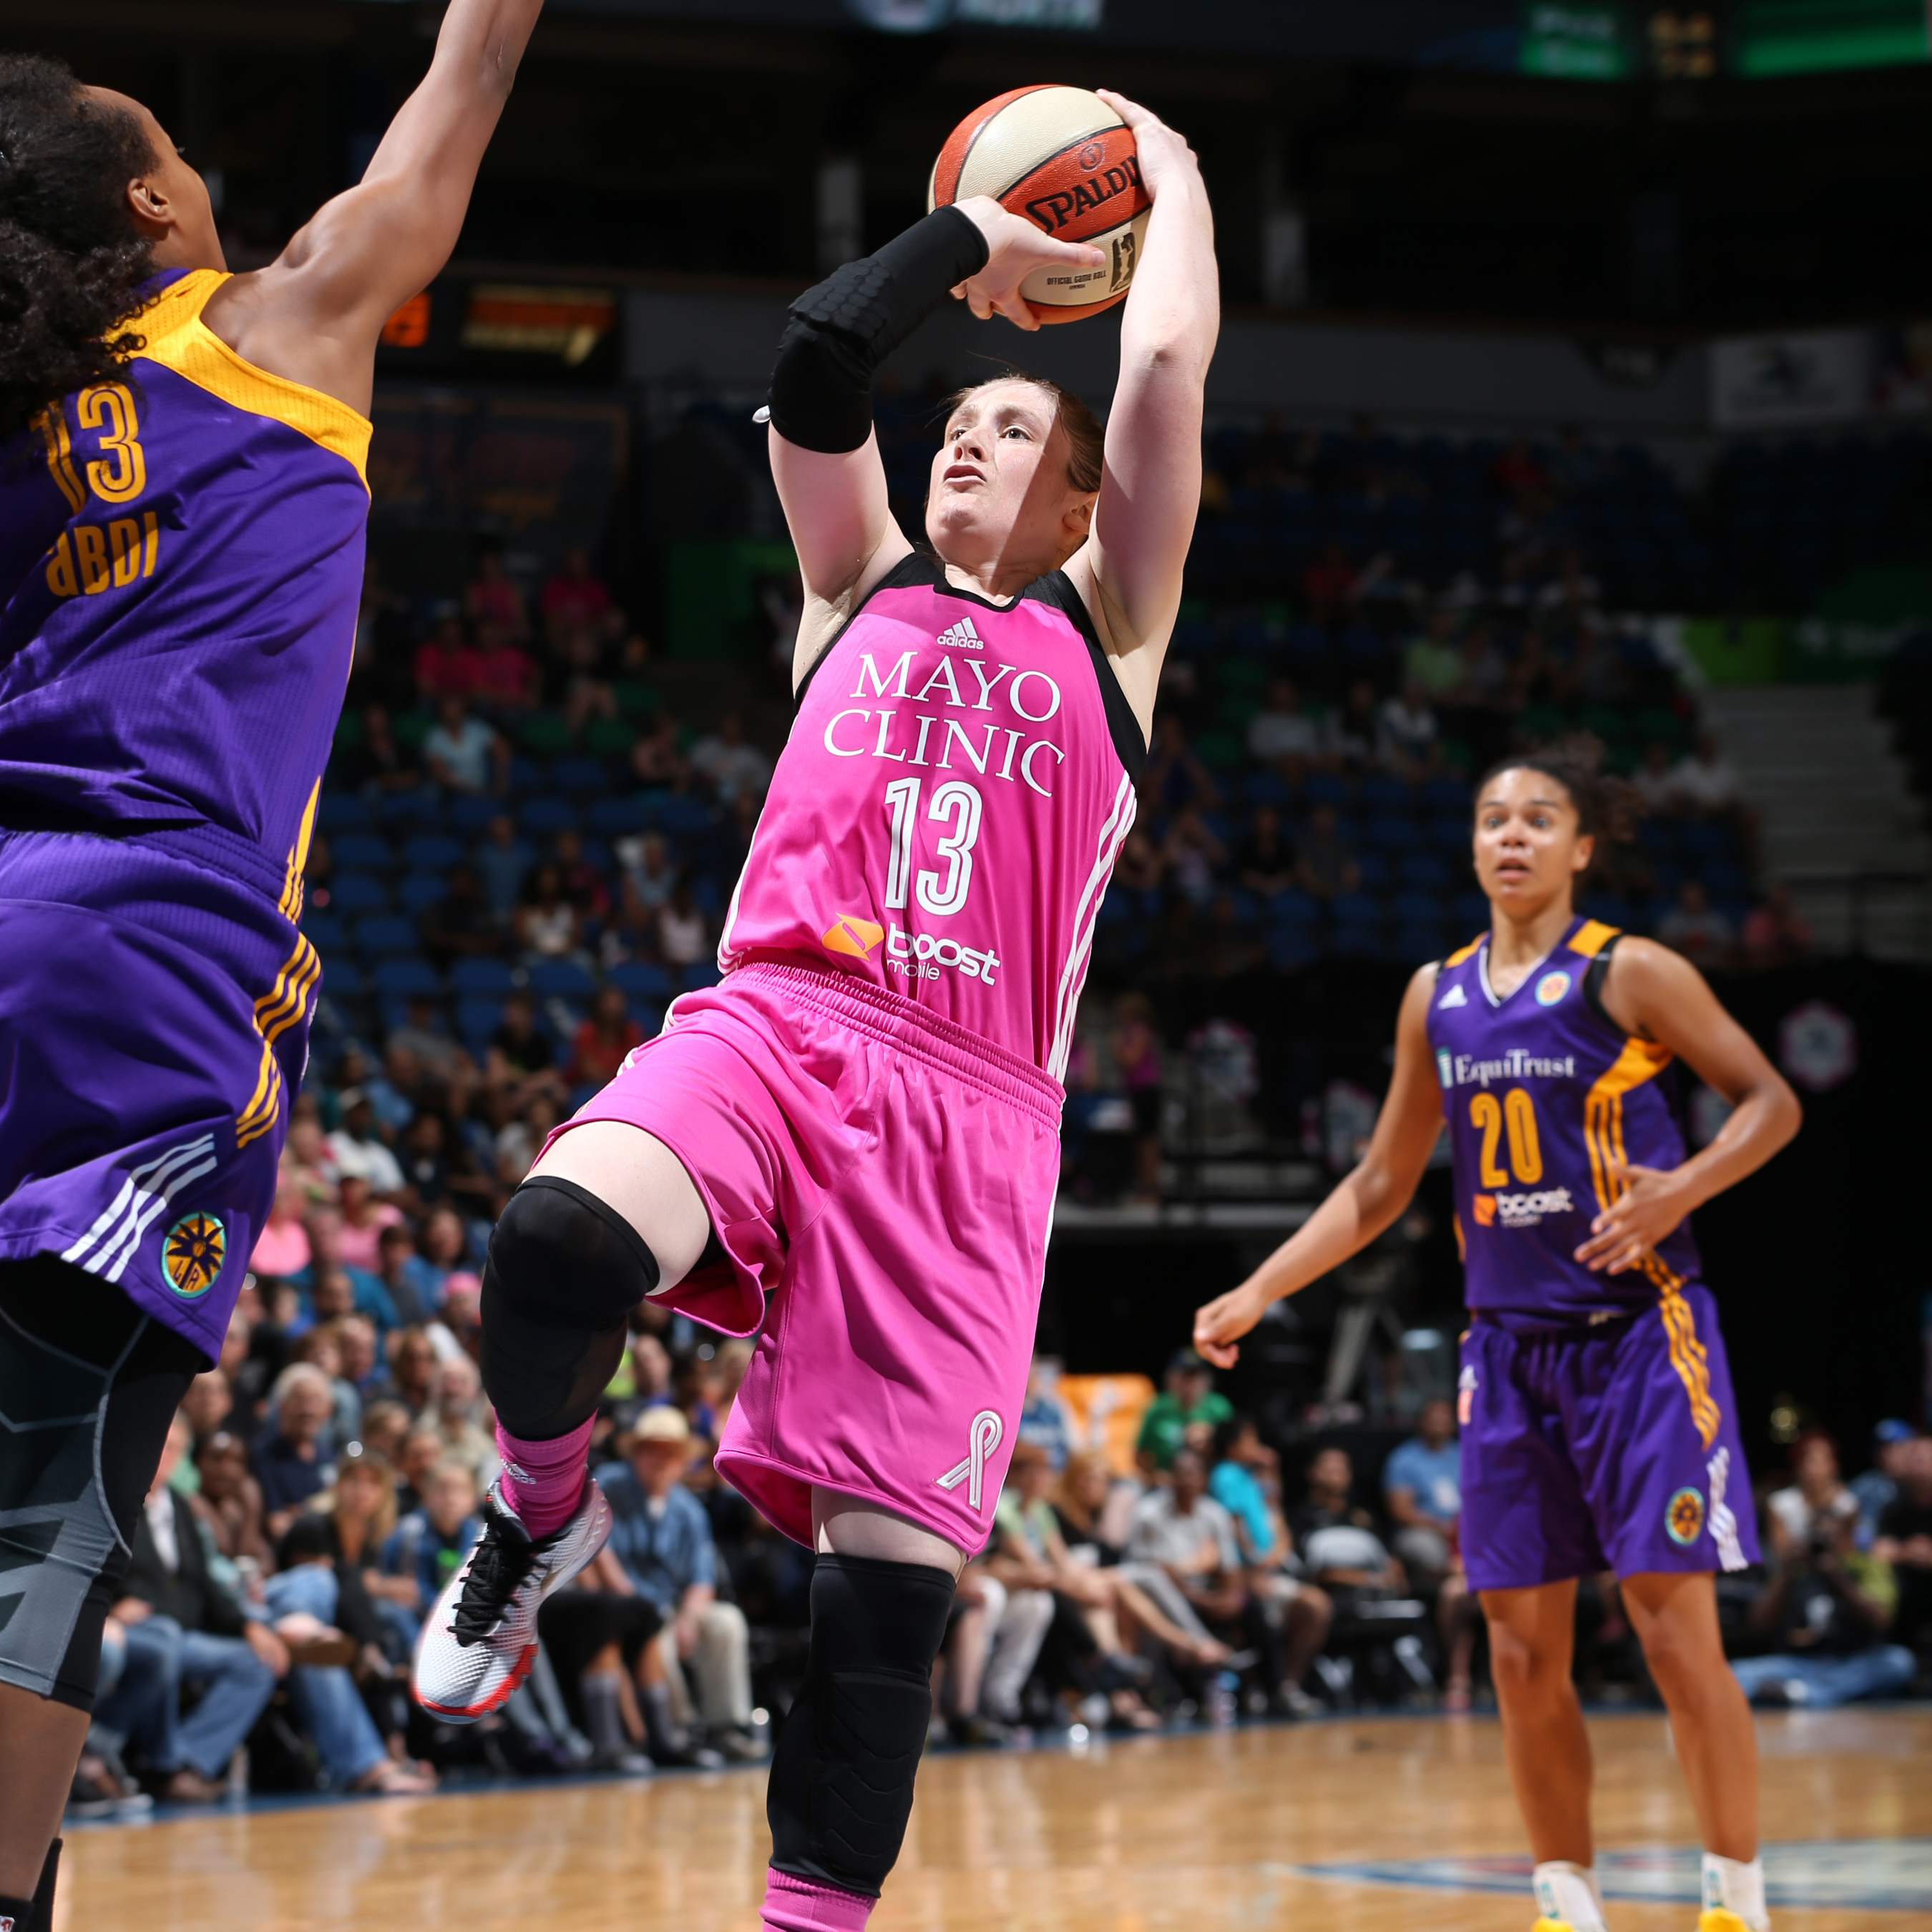 Lynx guard Lindsay Whalen quietly dropped 10 points on the Sparks on August 9, helping guide Minnesota to victory.